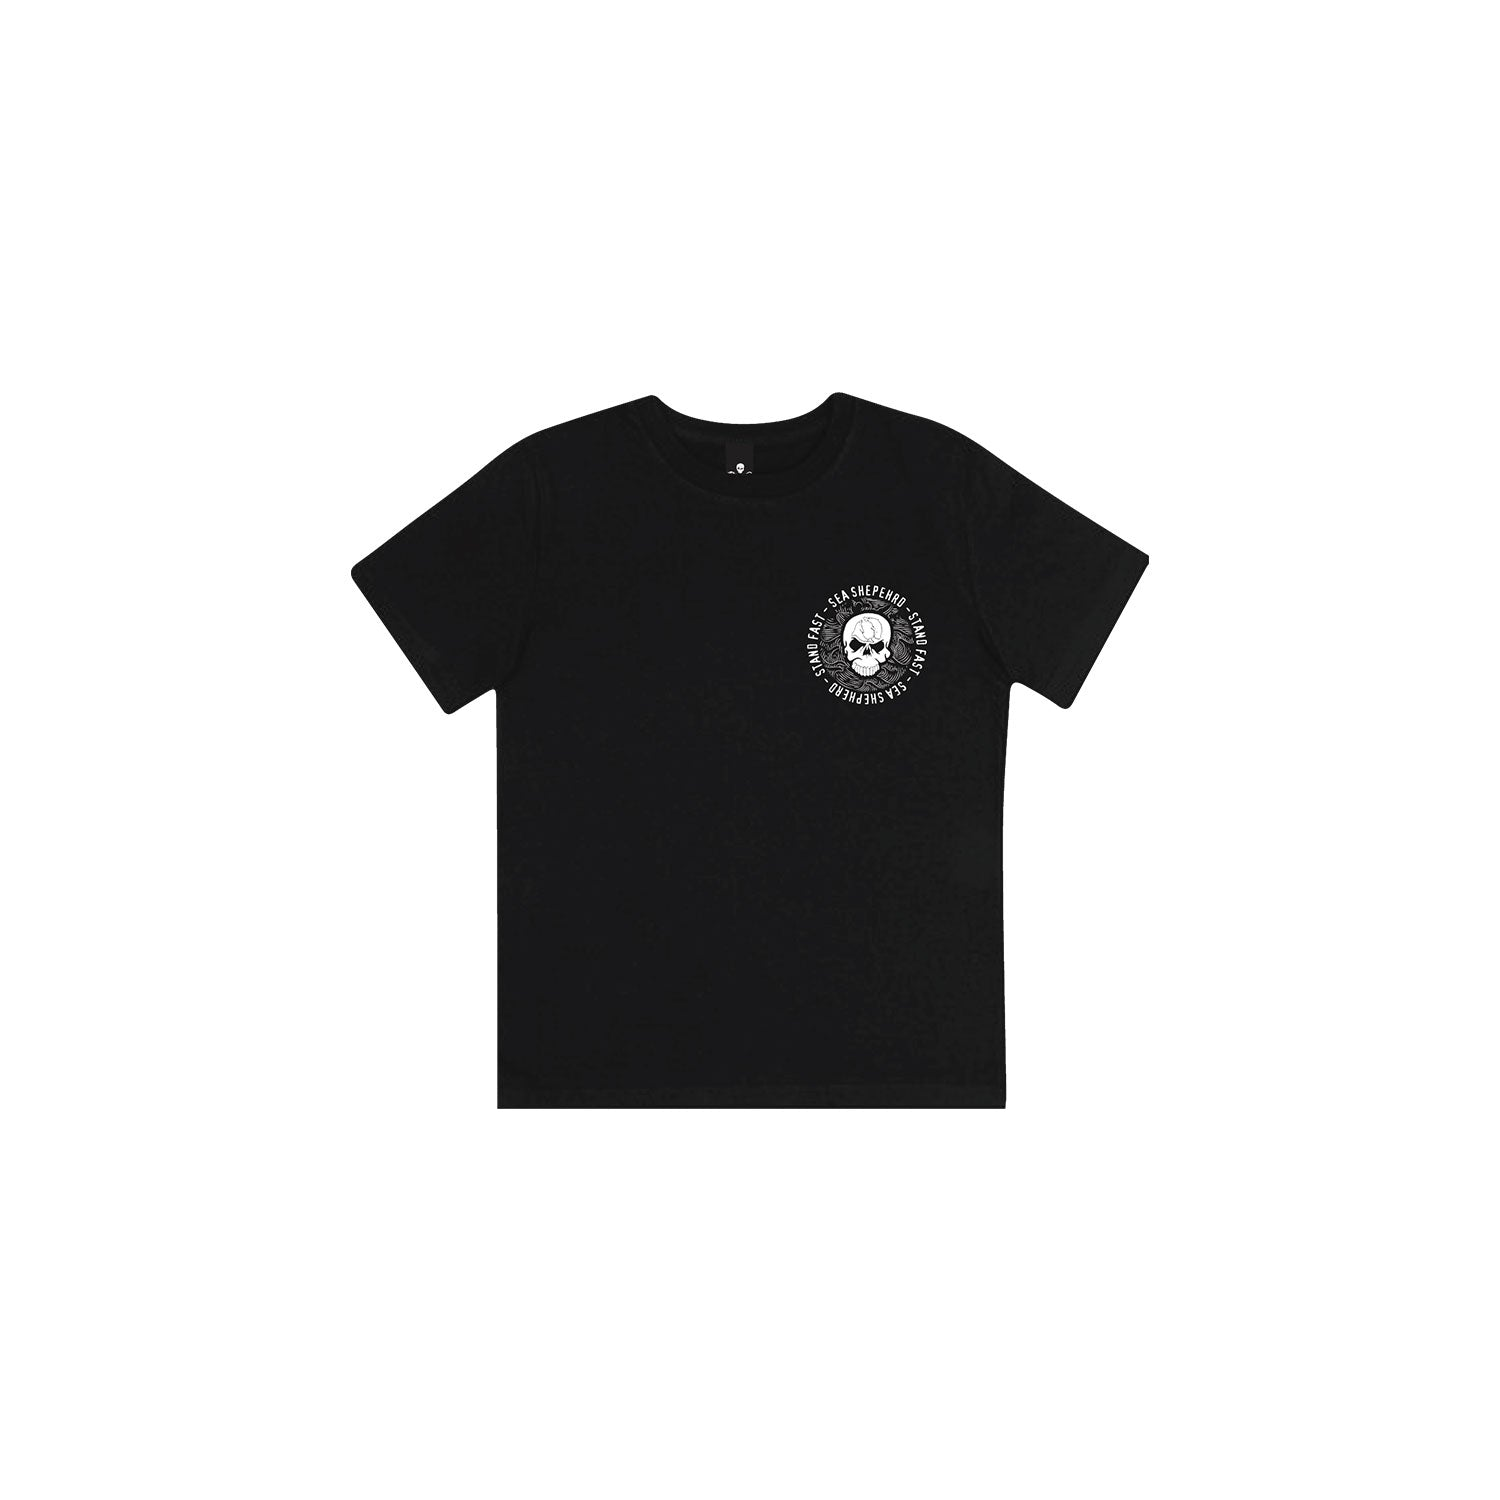 Sea Shepherd Sea Cliff Dreaming Kids Tee - Black